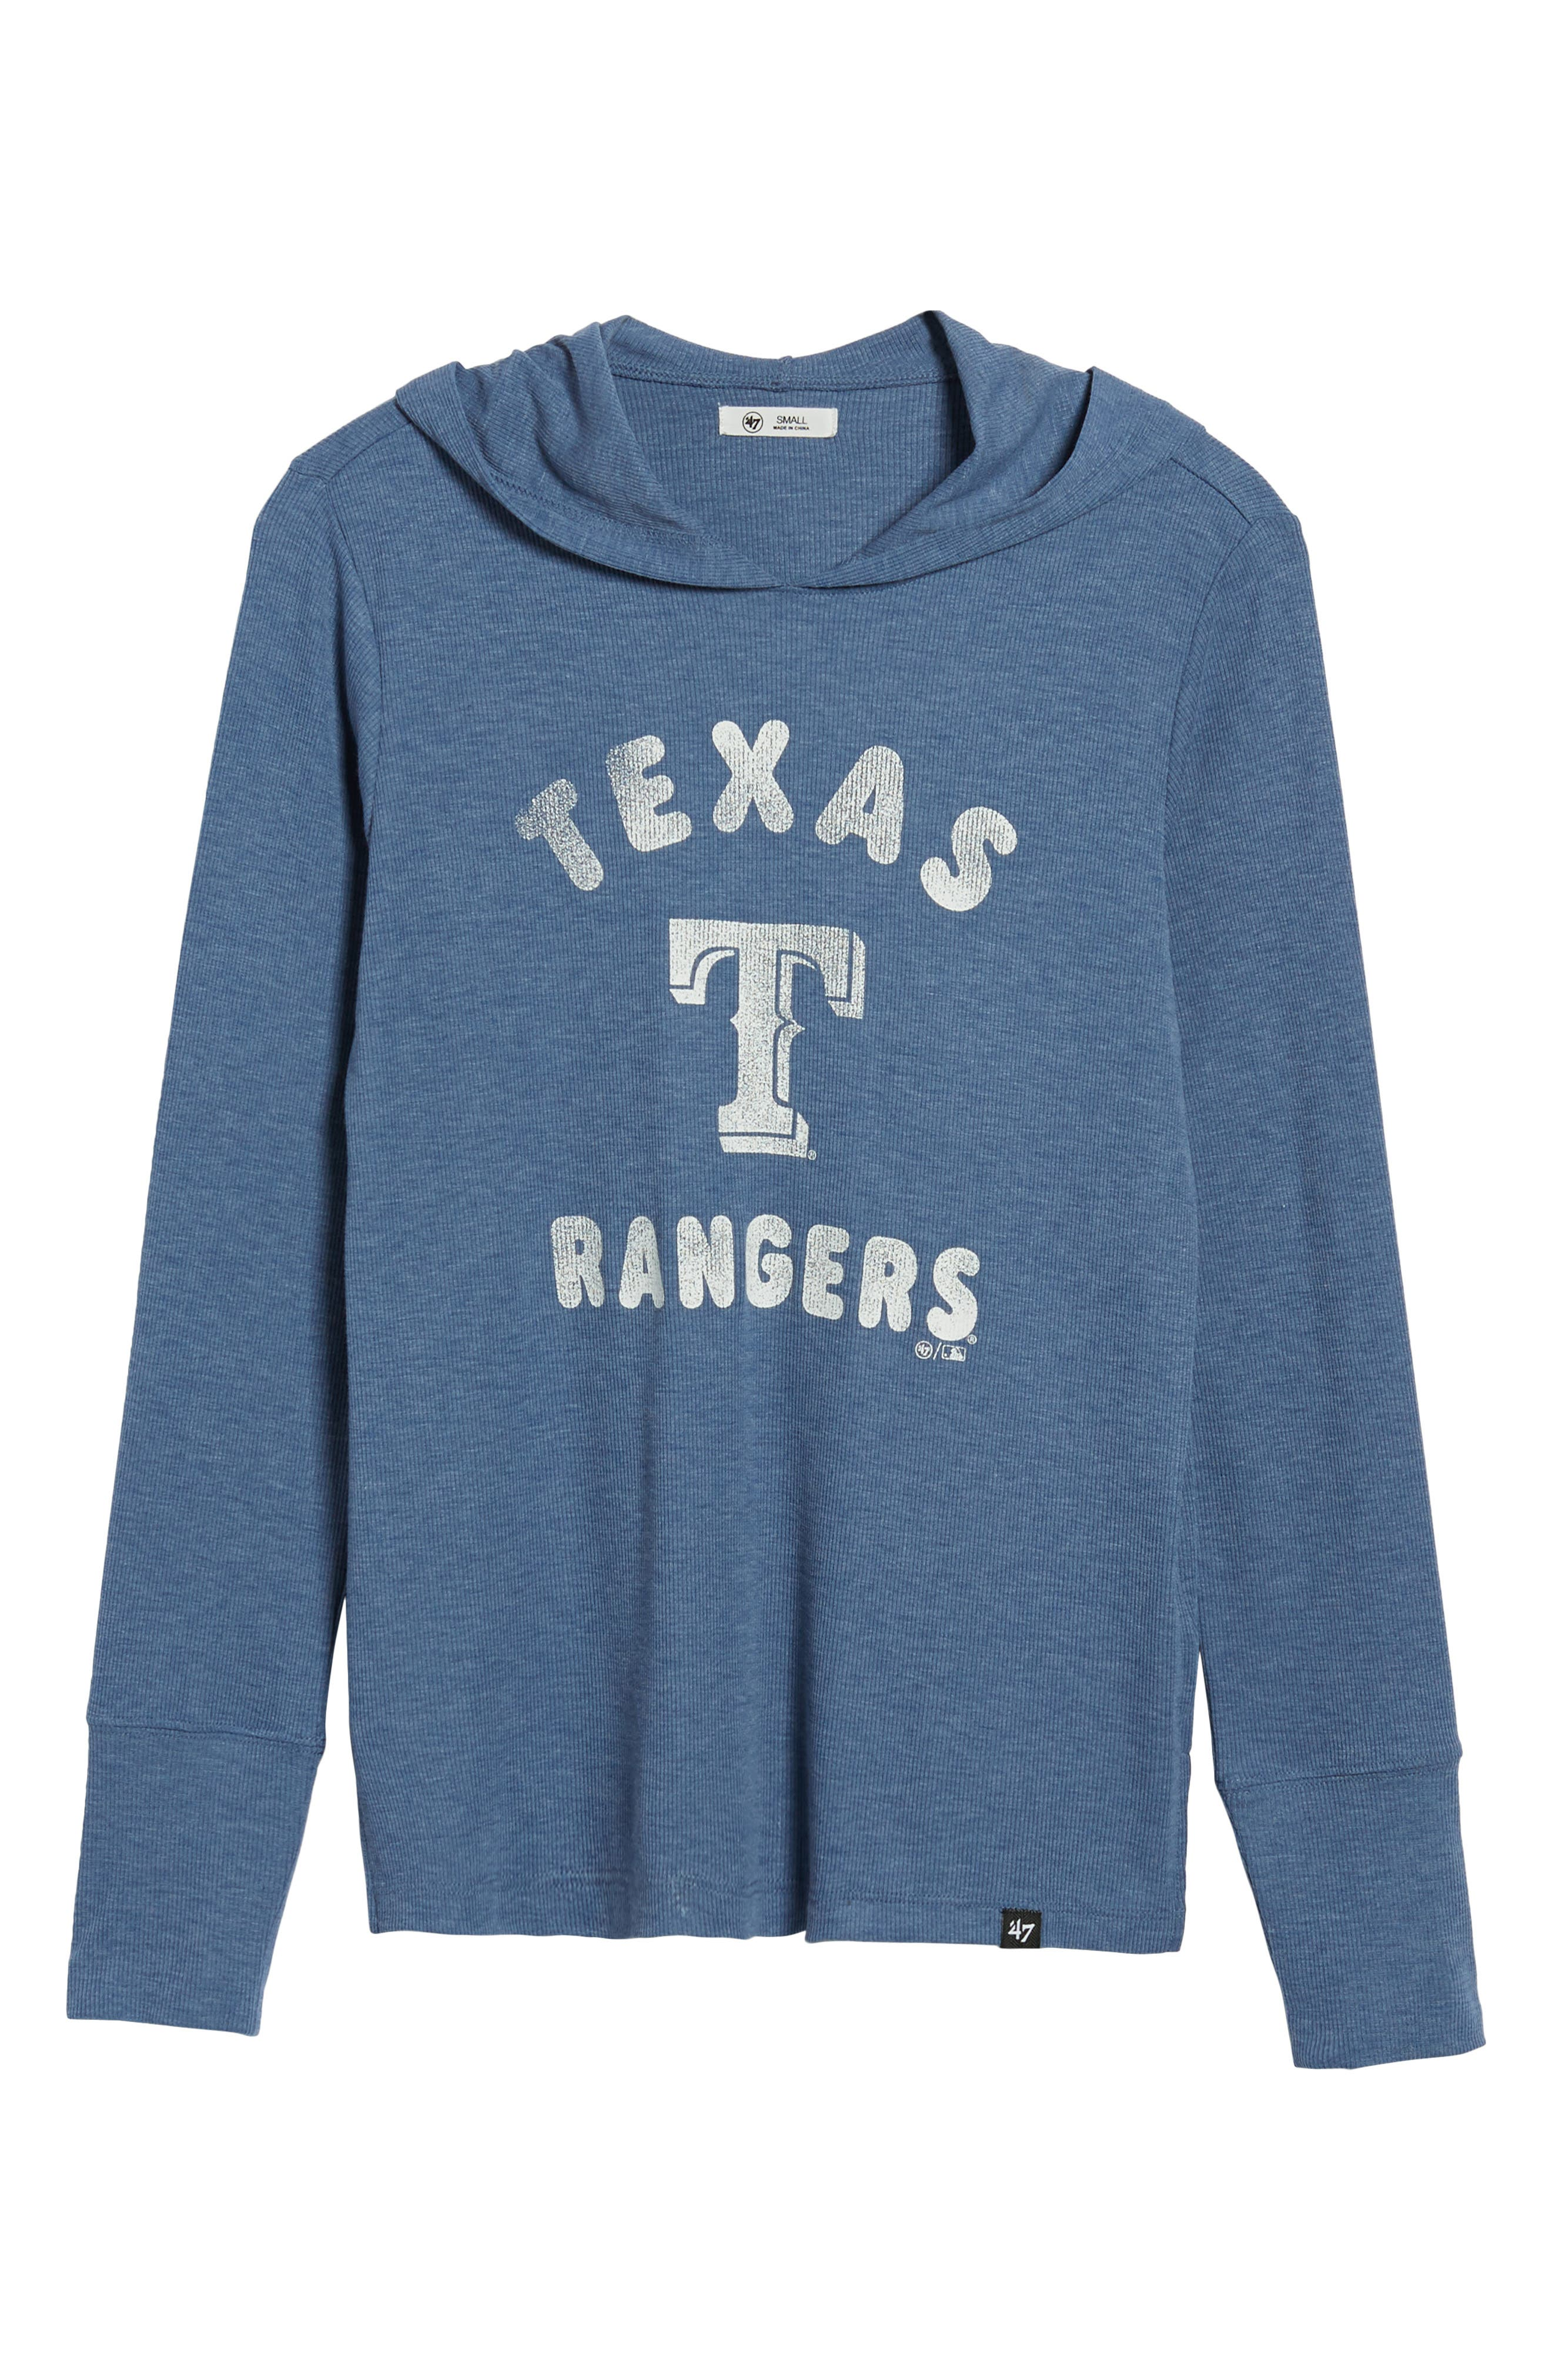 Campbell Texas Rangers Rib Knit Hooded Top,                             Alternate thumbnail 7, color,                             400